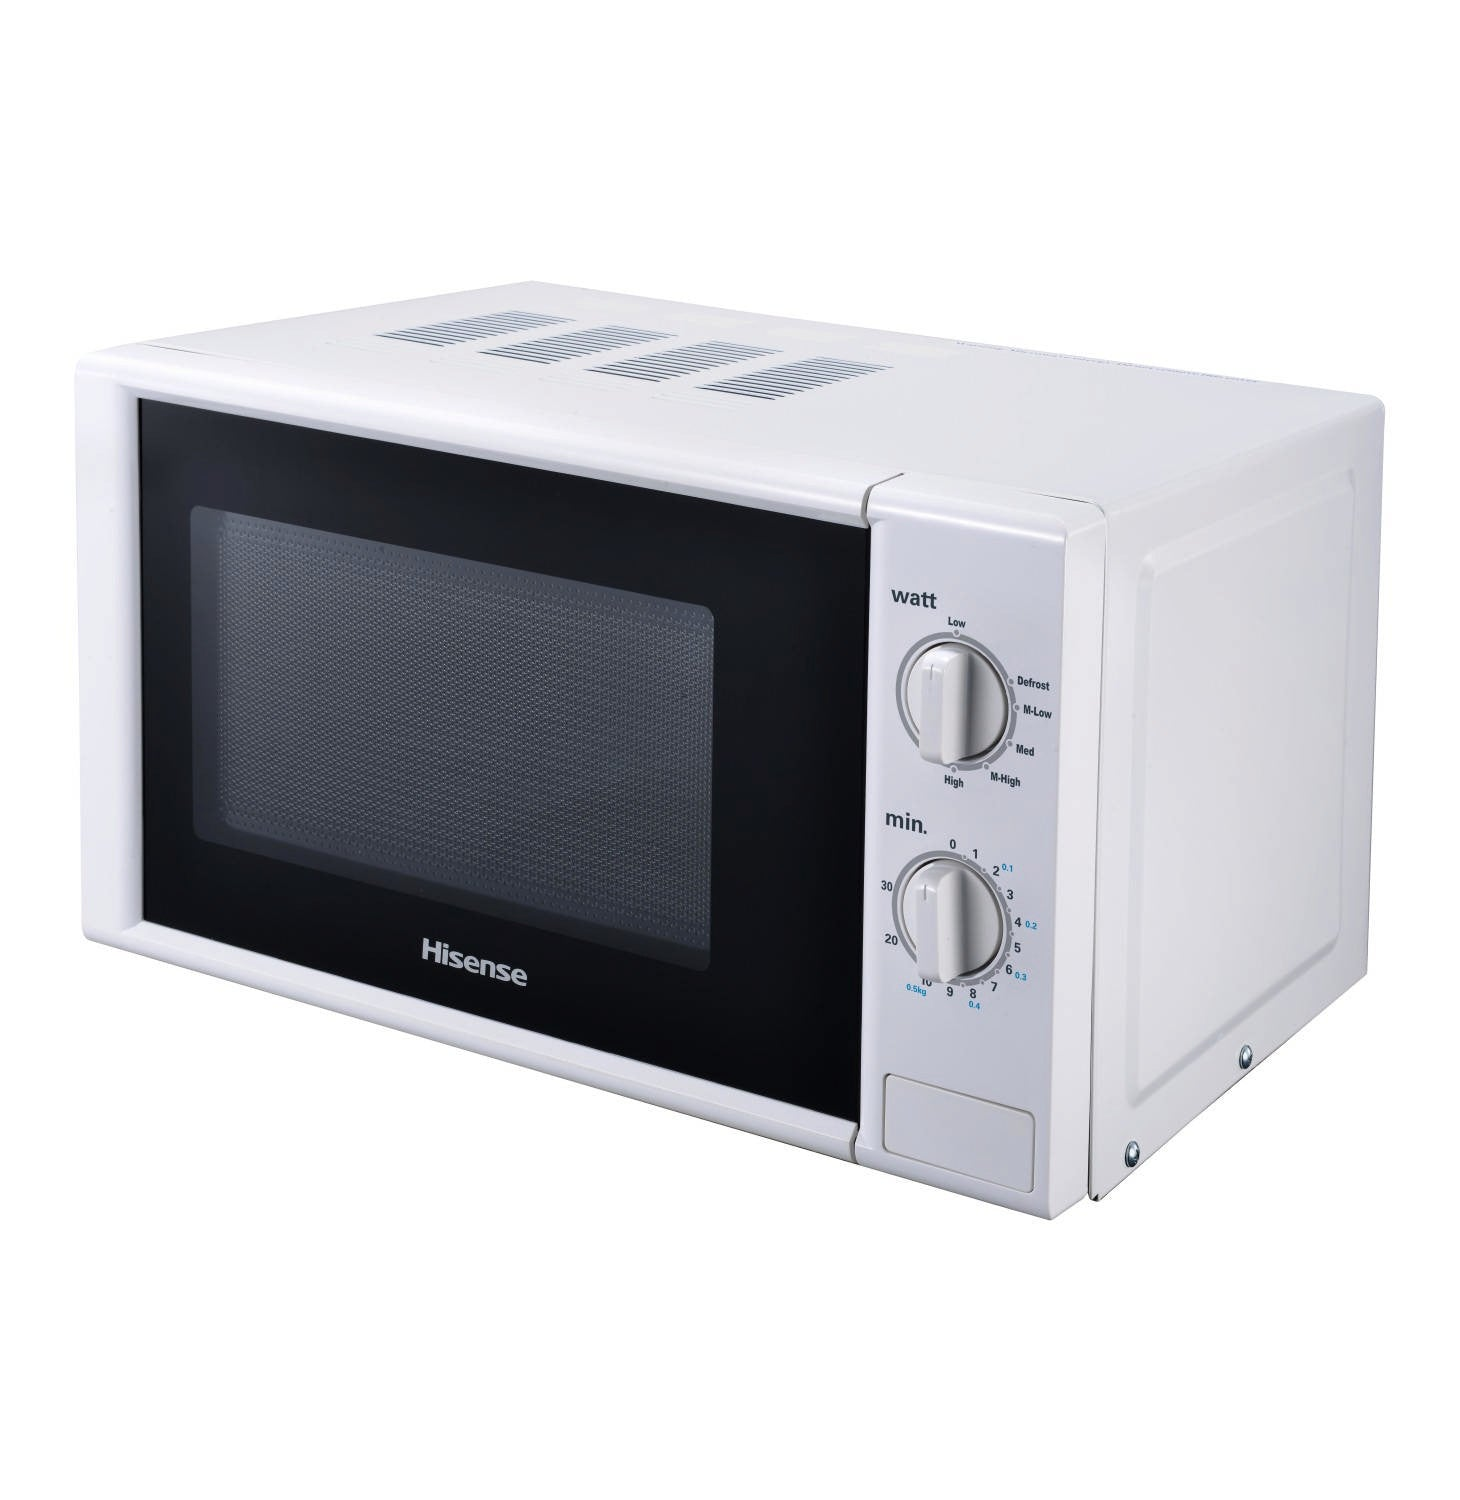 Hisense 20L Microwave Oven - H20mommi - Dool-X IT Republic